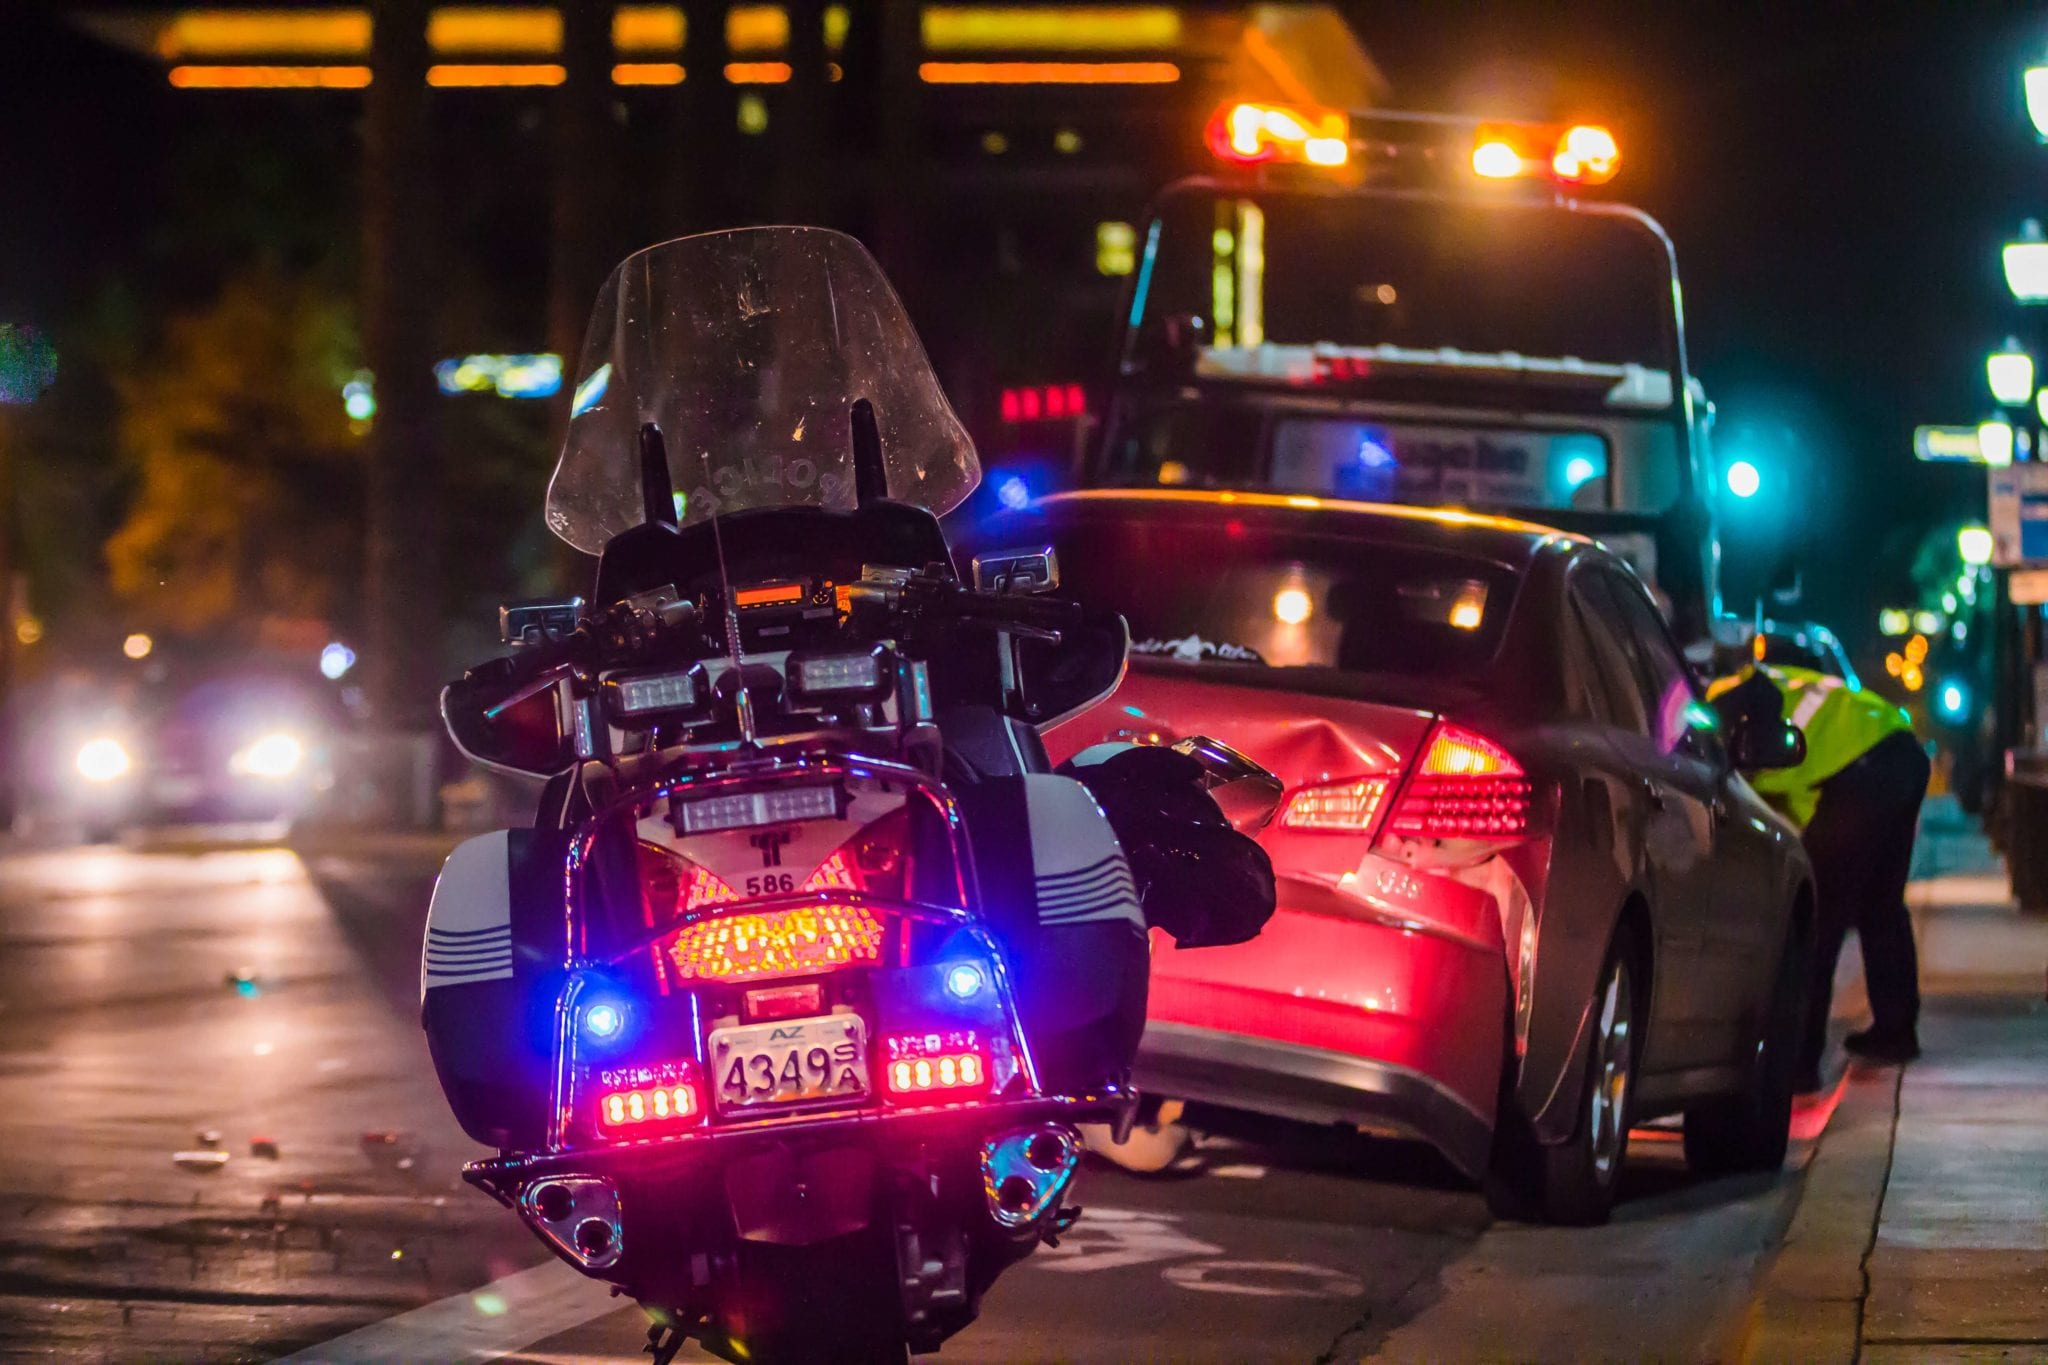 Another victim of drunk-driving accident dies